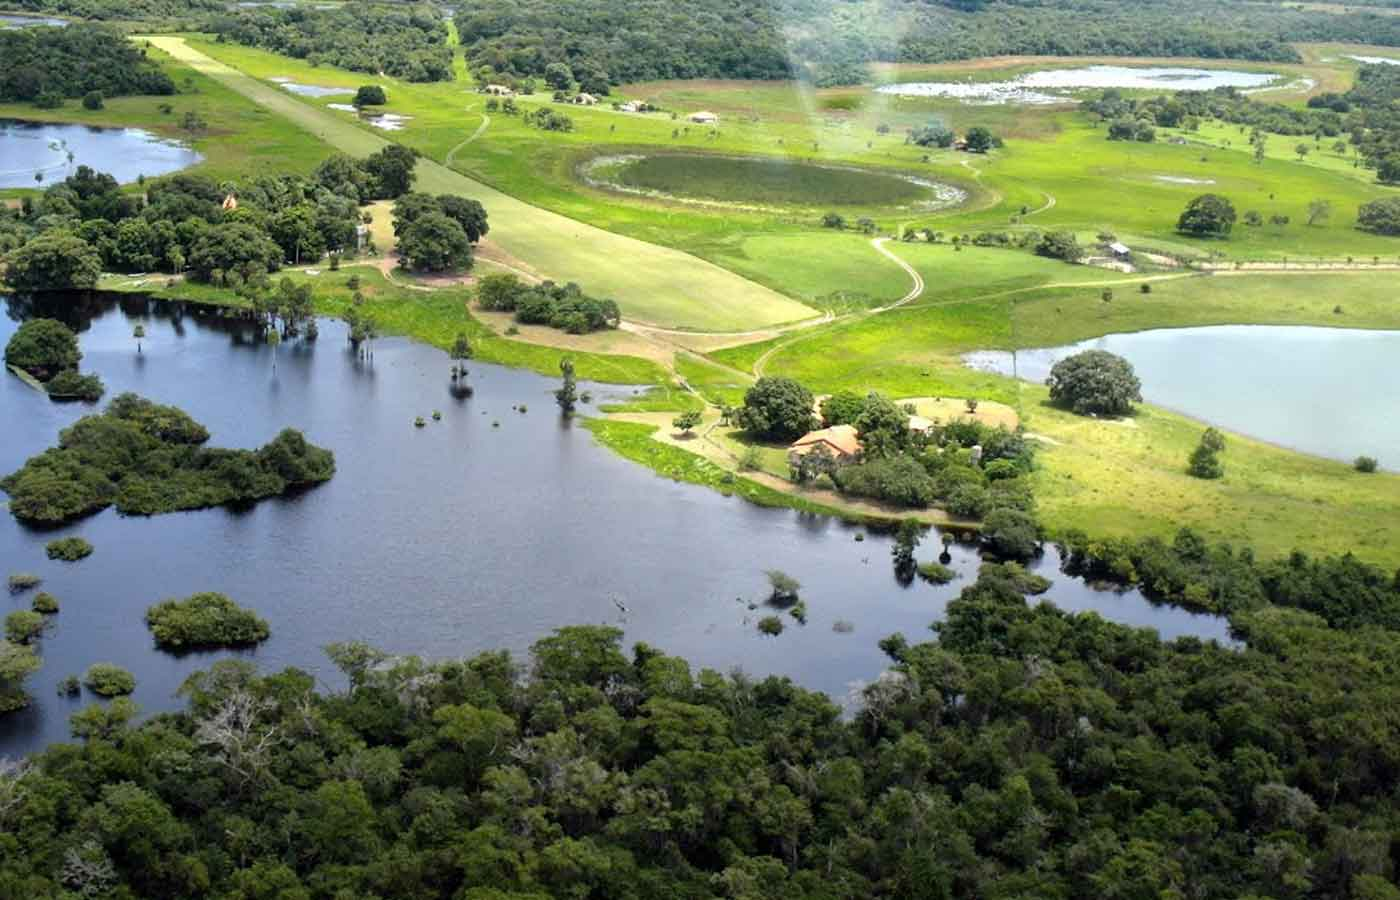 Fazenda Barranco Alto - Holidays to the Pantanal, Brazil